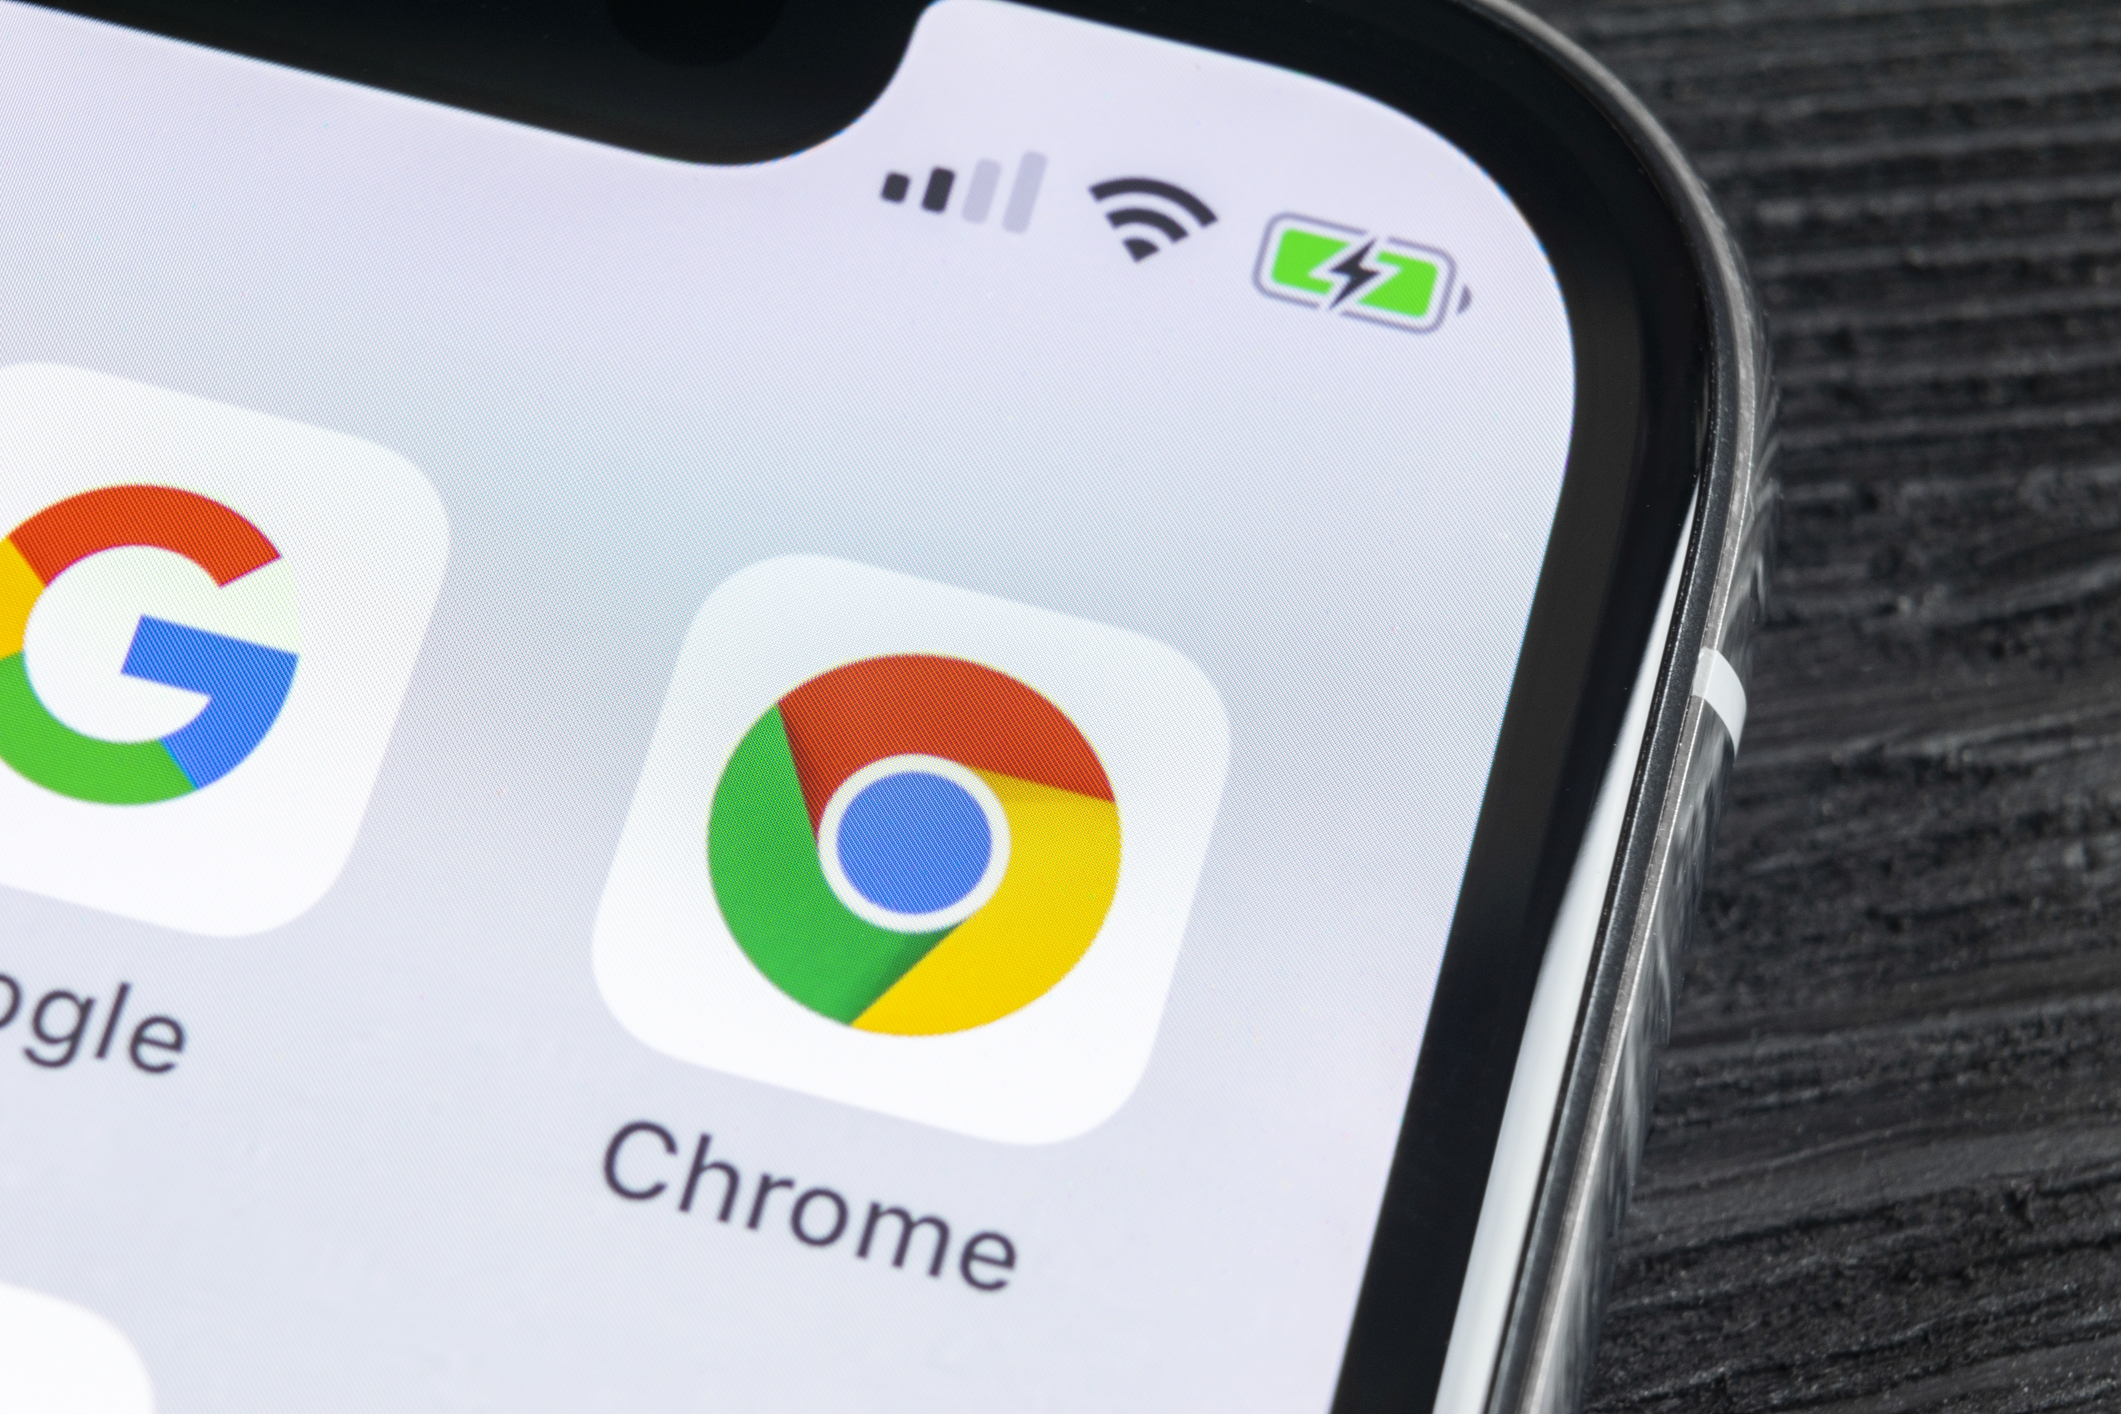 Will Chrome users soon feel the full impact of ads?